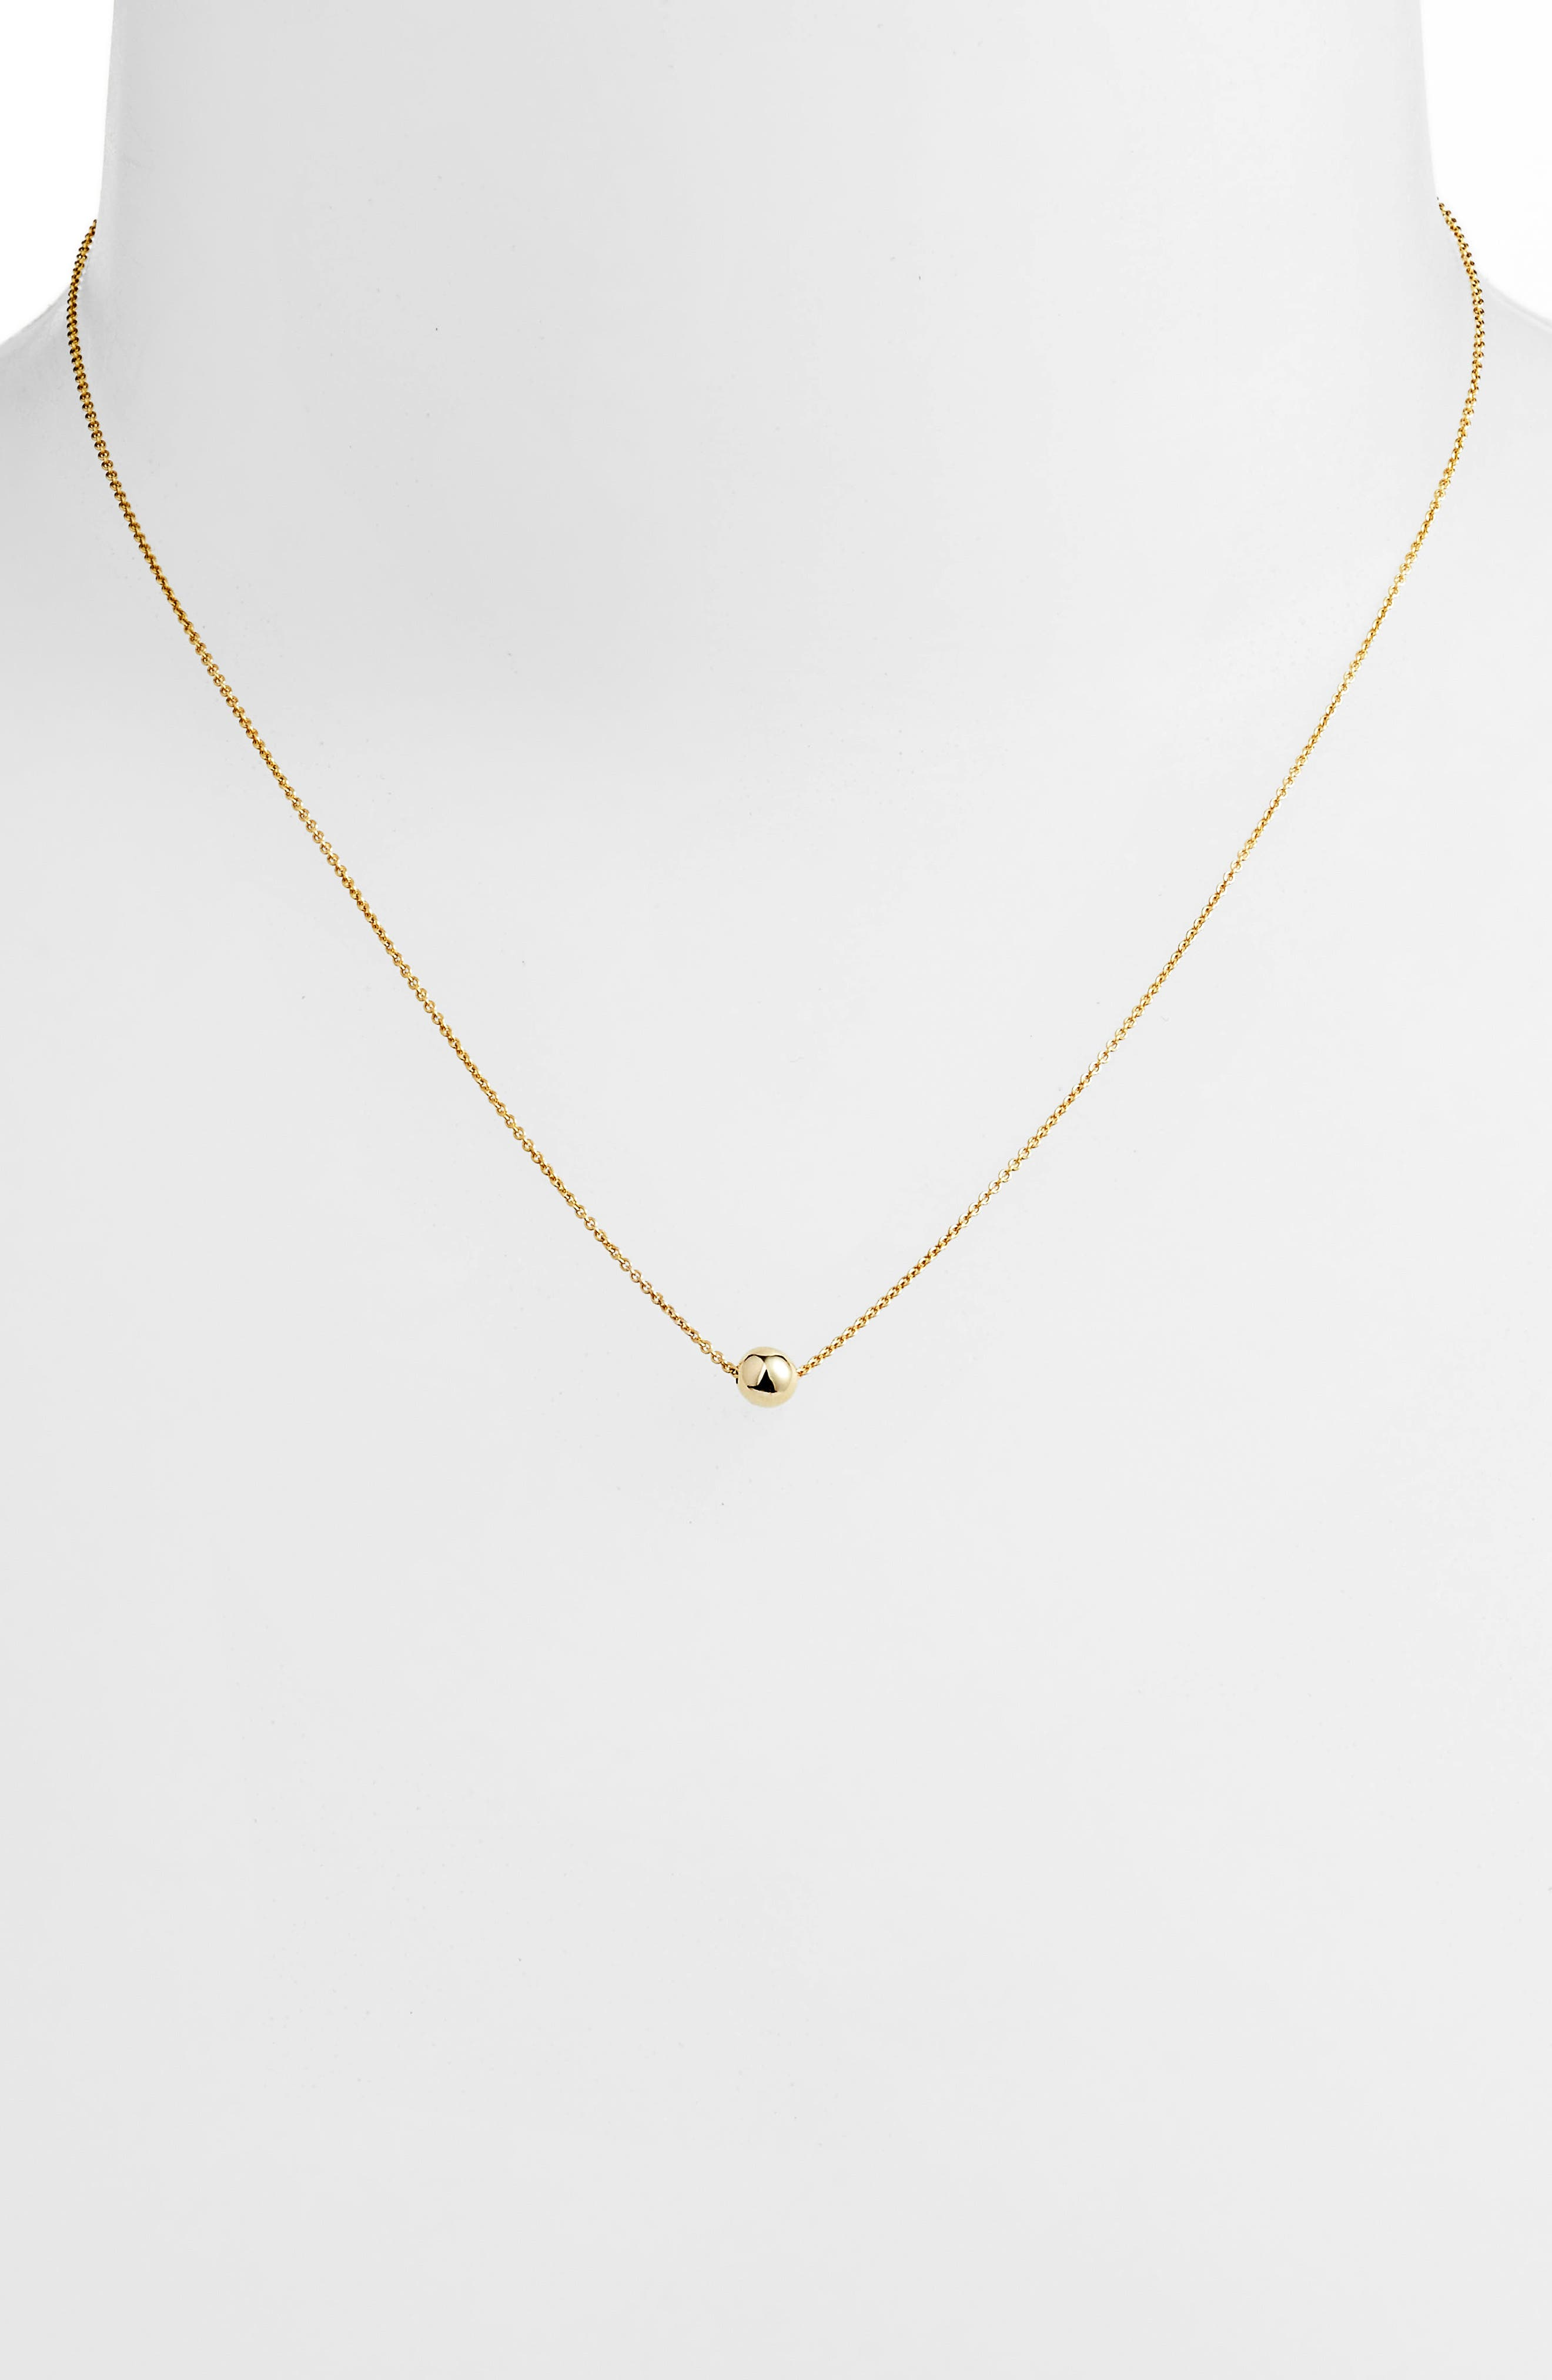 Ball Pendant Necklace,                             Alternate thumbnail 2, color,                             YELLOW GOLD